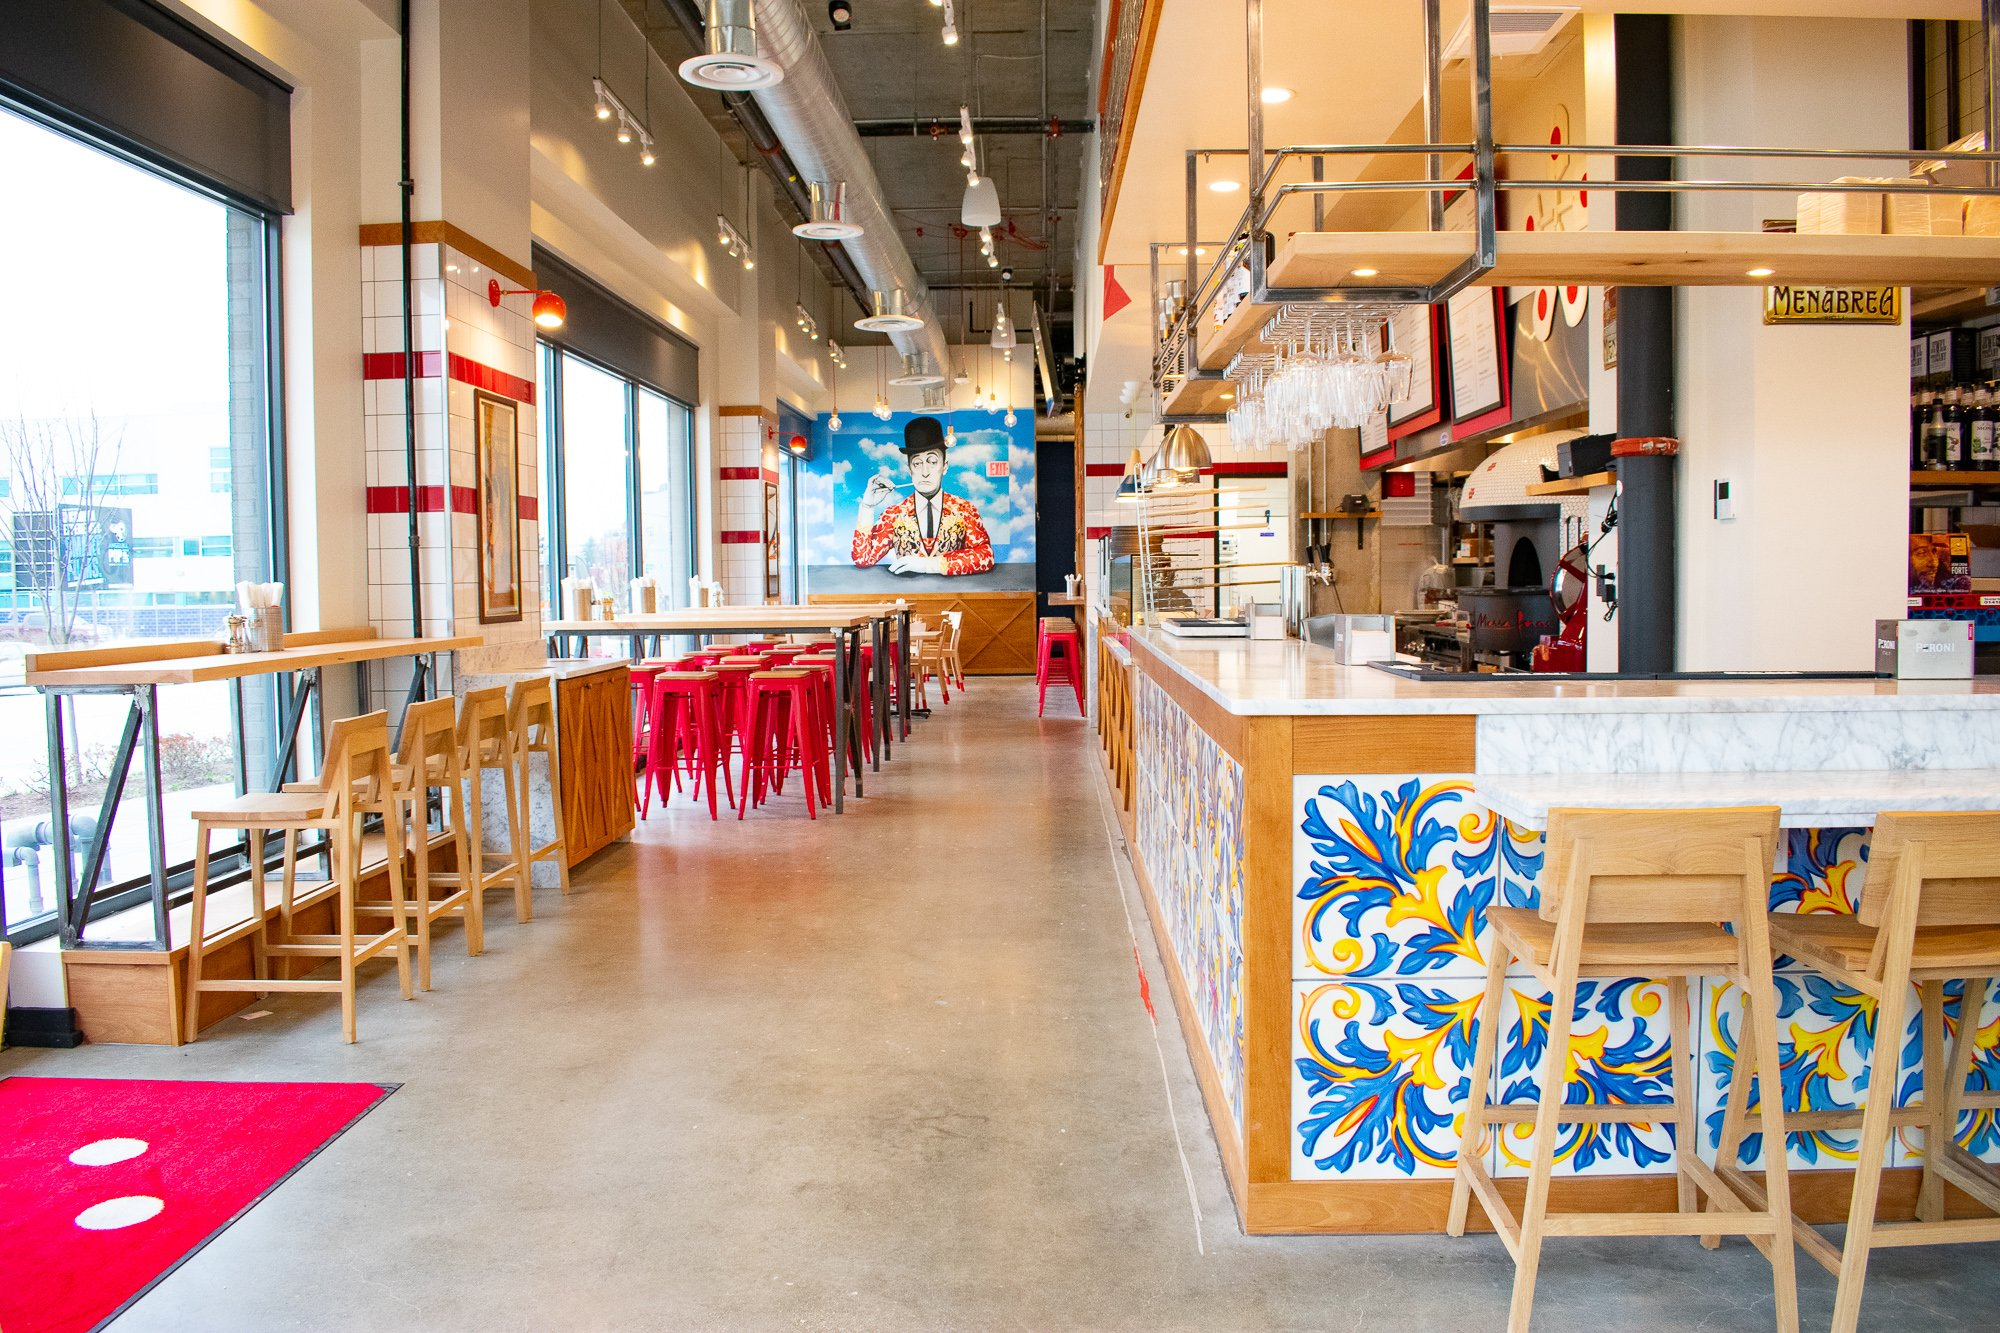 The red and white decor is reminiscent of pizzerias in Naples while the blue and yellow tiling calls to Matarazzo's connection to the Amalfi Coast. Photograph by Meaghan Webster.